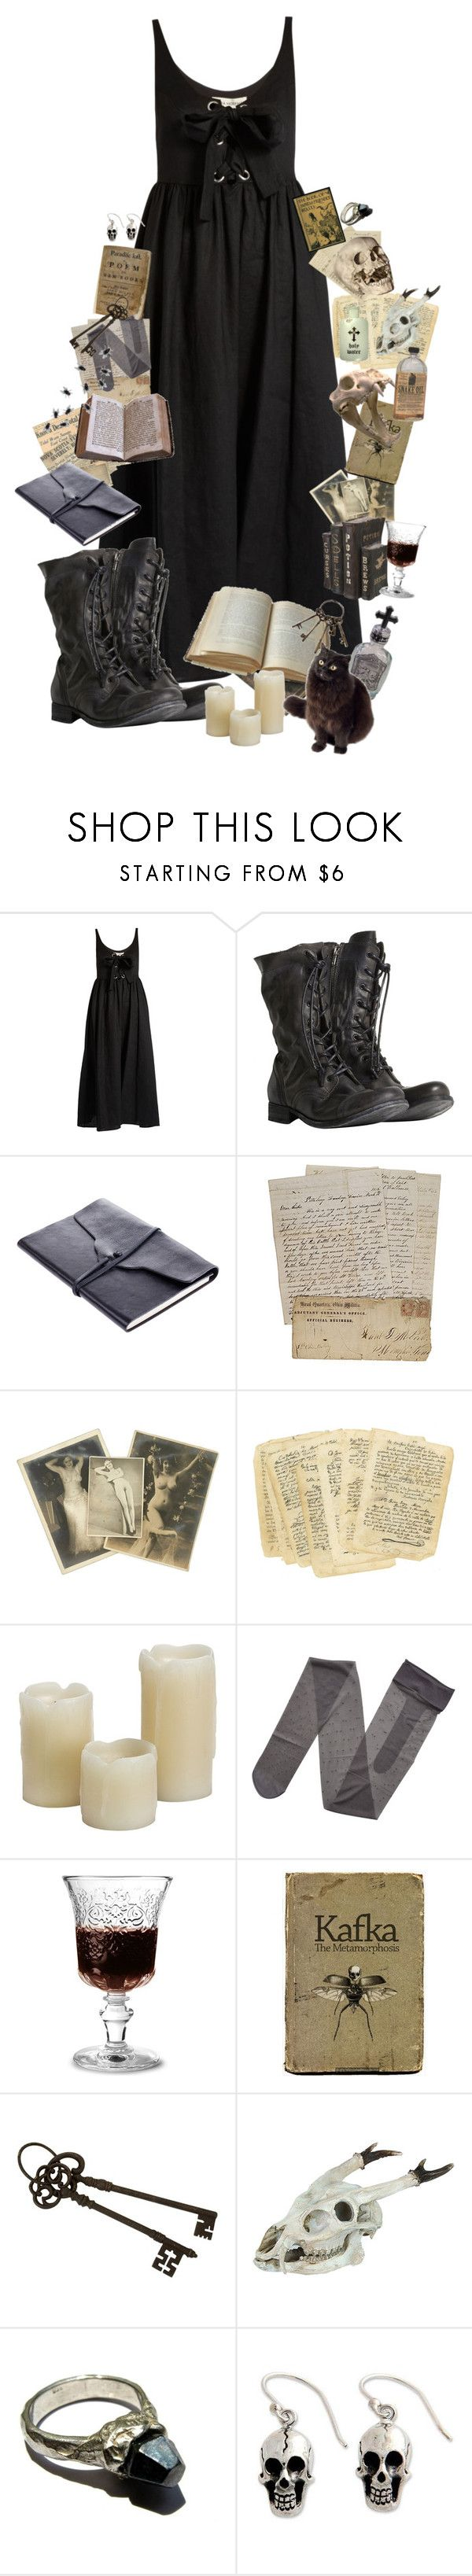 """""""xxx"""" by ziouxsie ❤ liked on Polyvore featuring Mara Hoffman, AllSaints, Inglow, Gerbe, La Rochère, Tokyo Rose, Dot & Bo, Linda Friedrich Jewelry and NOVICA"""